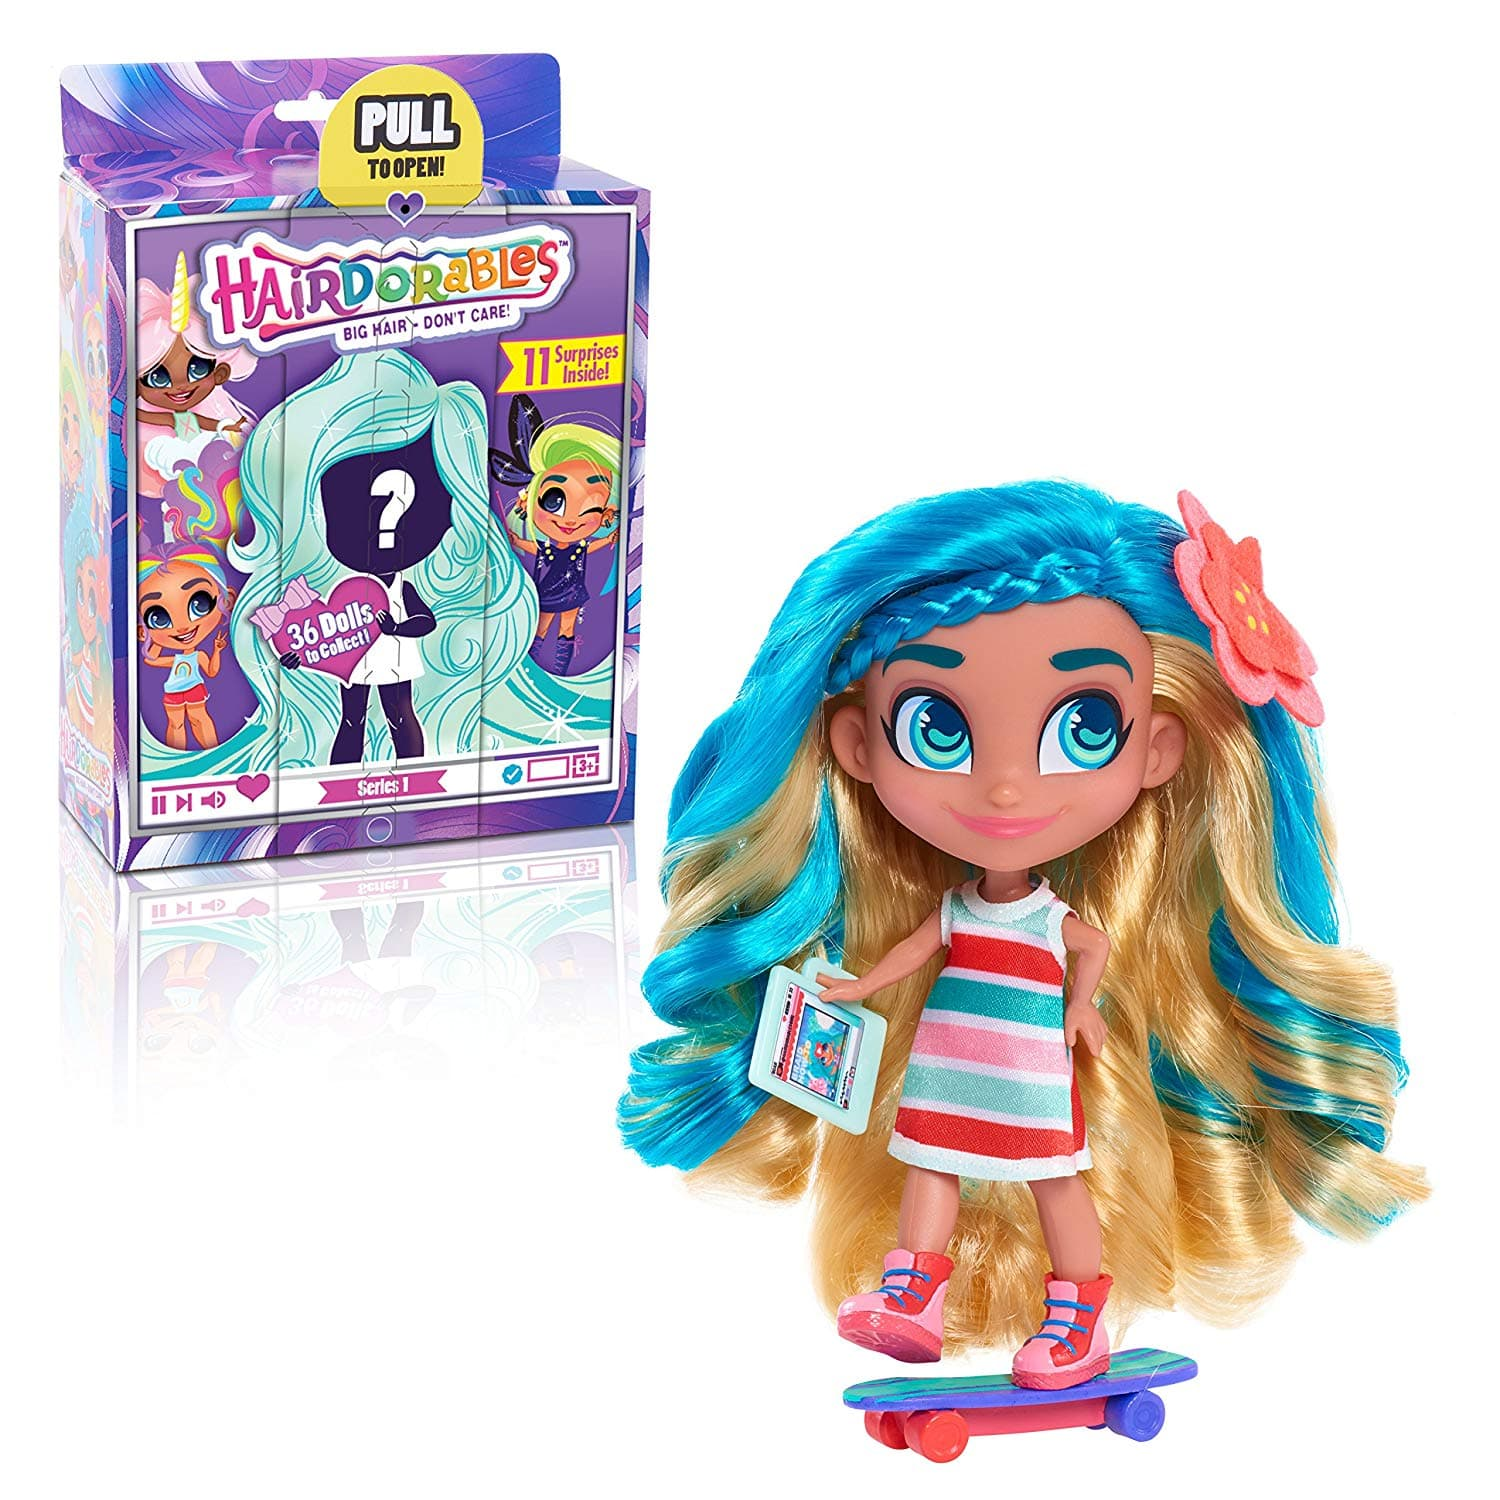 Hairdorables ‐ Collectible Surprise Dolls and Accessories: Series 1 $9.88 - Walmart / Amazon